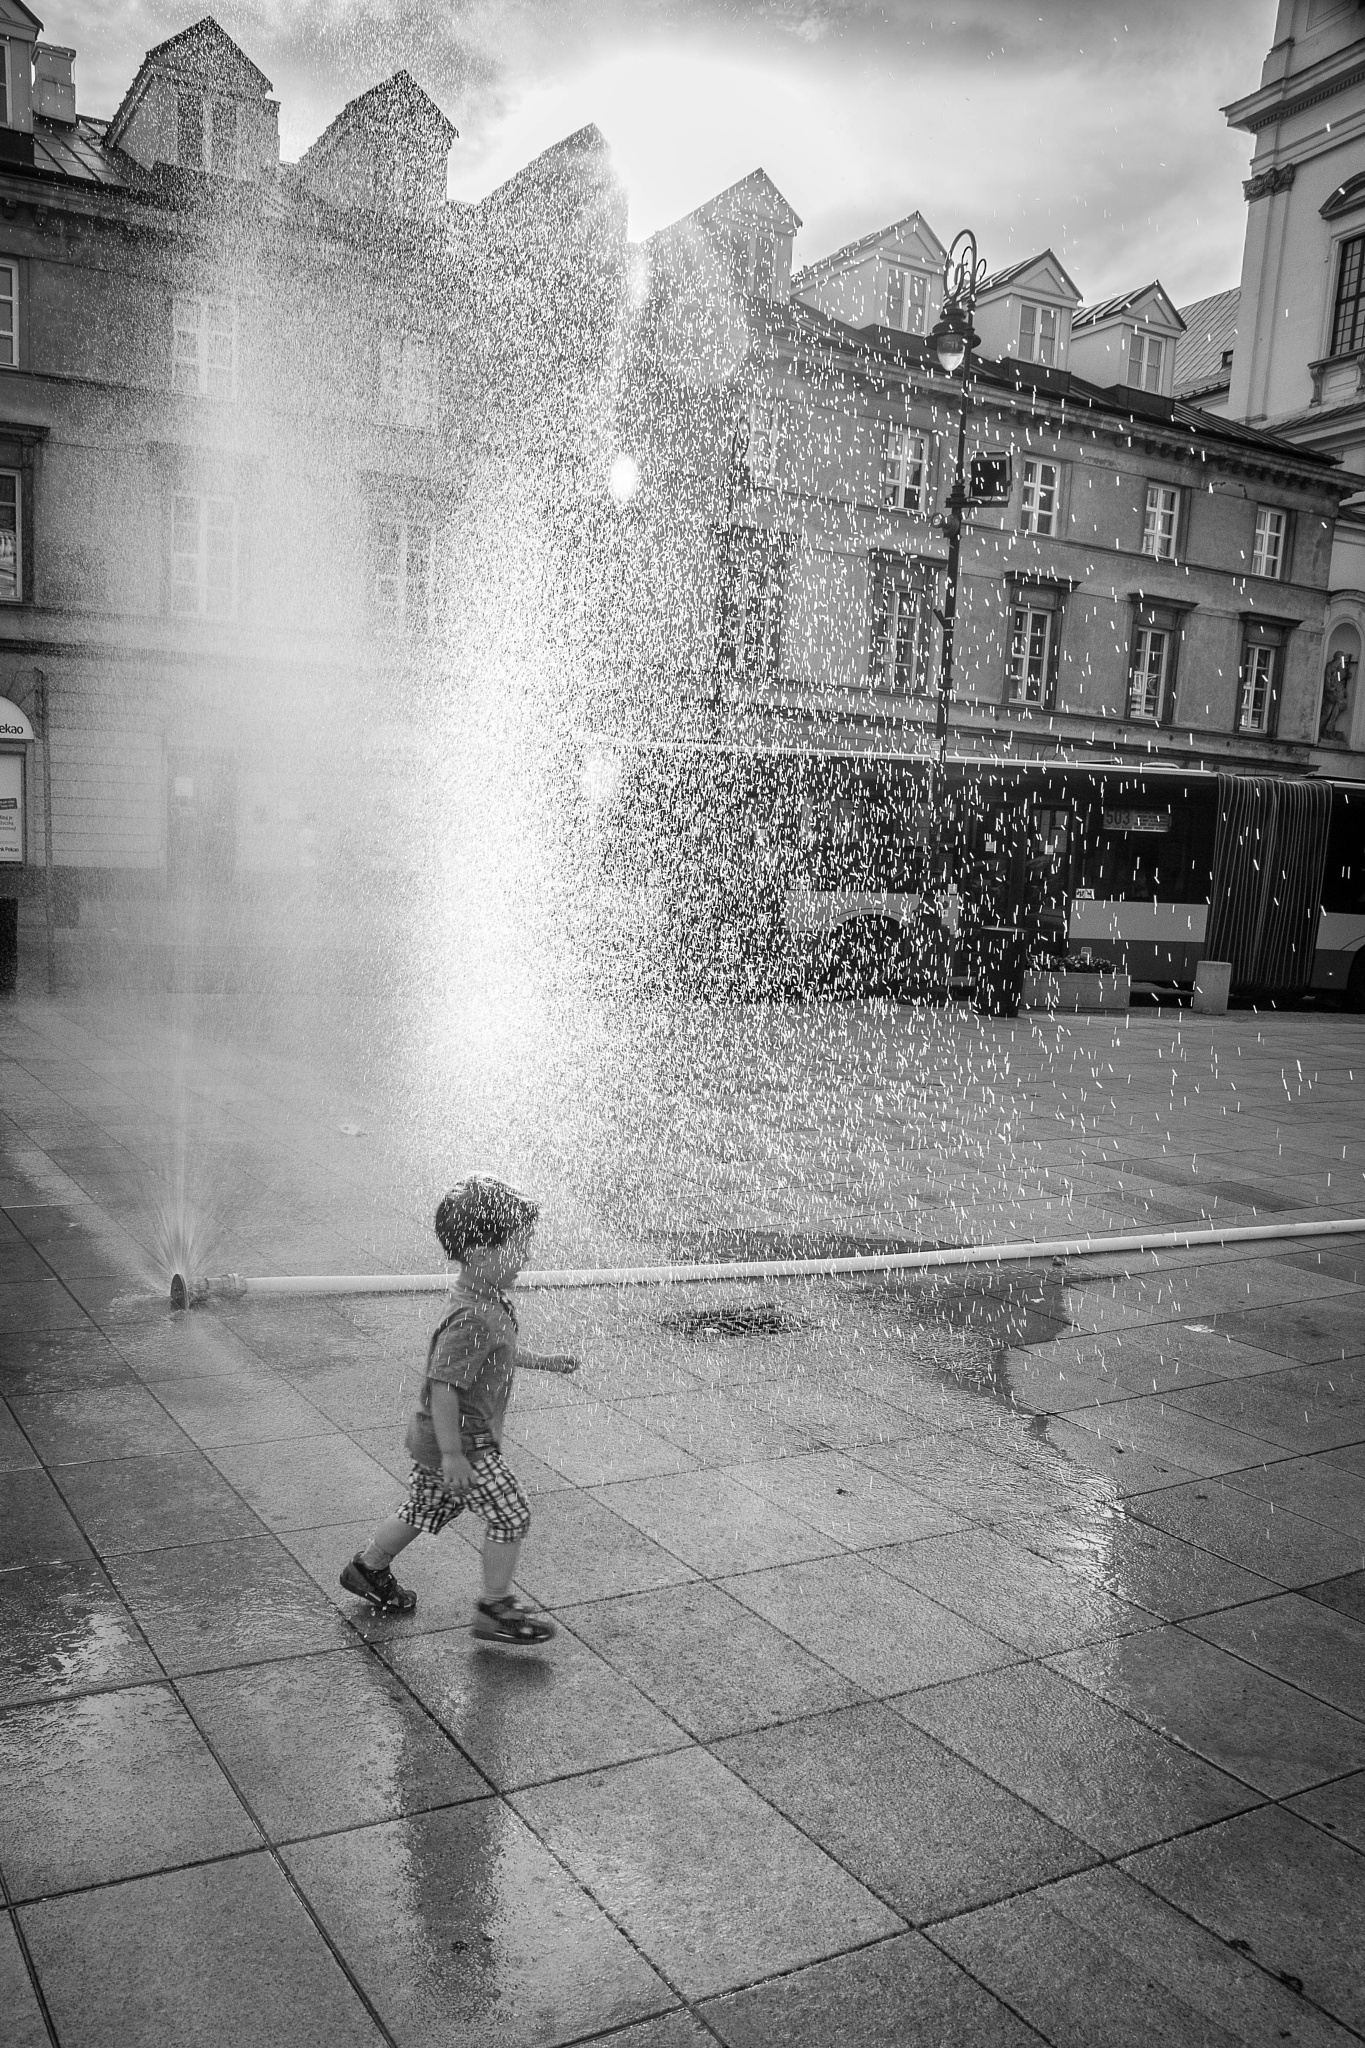 Summer in the city by ignacy50